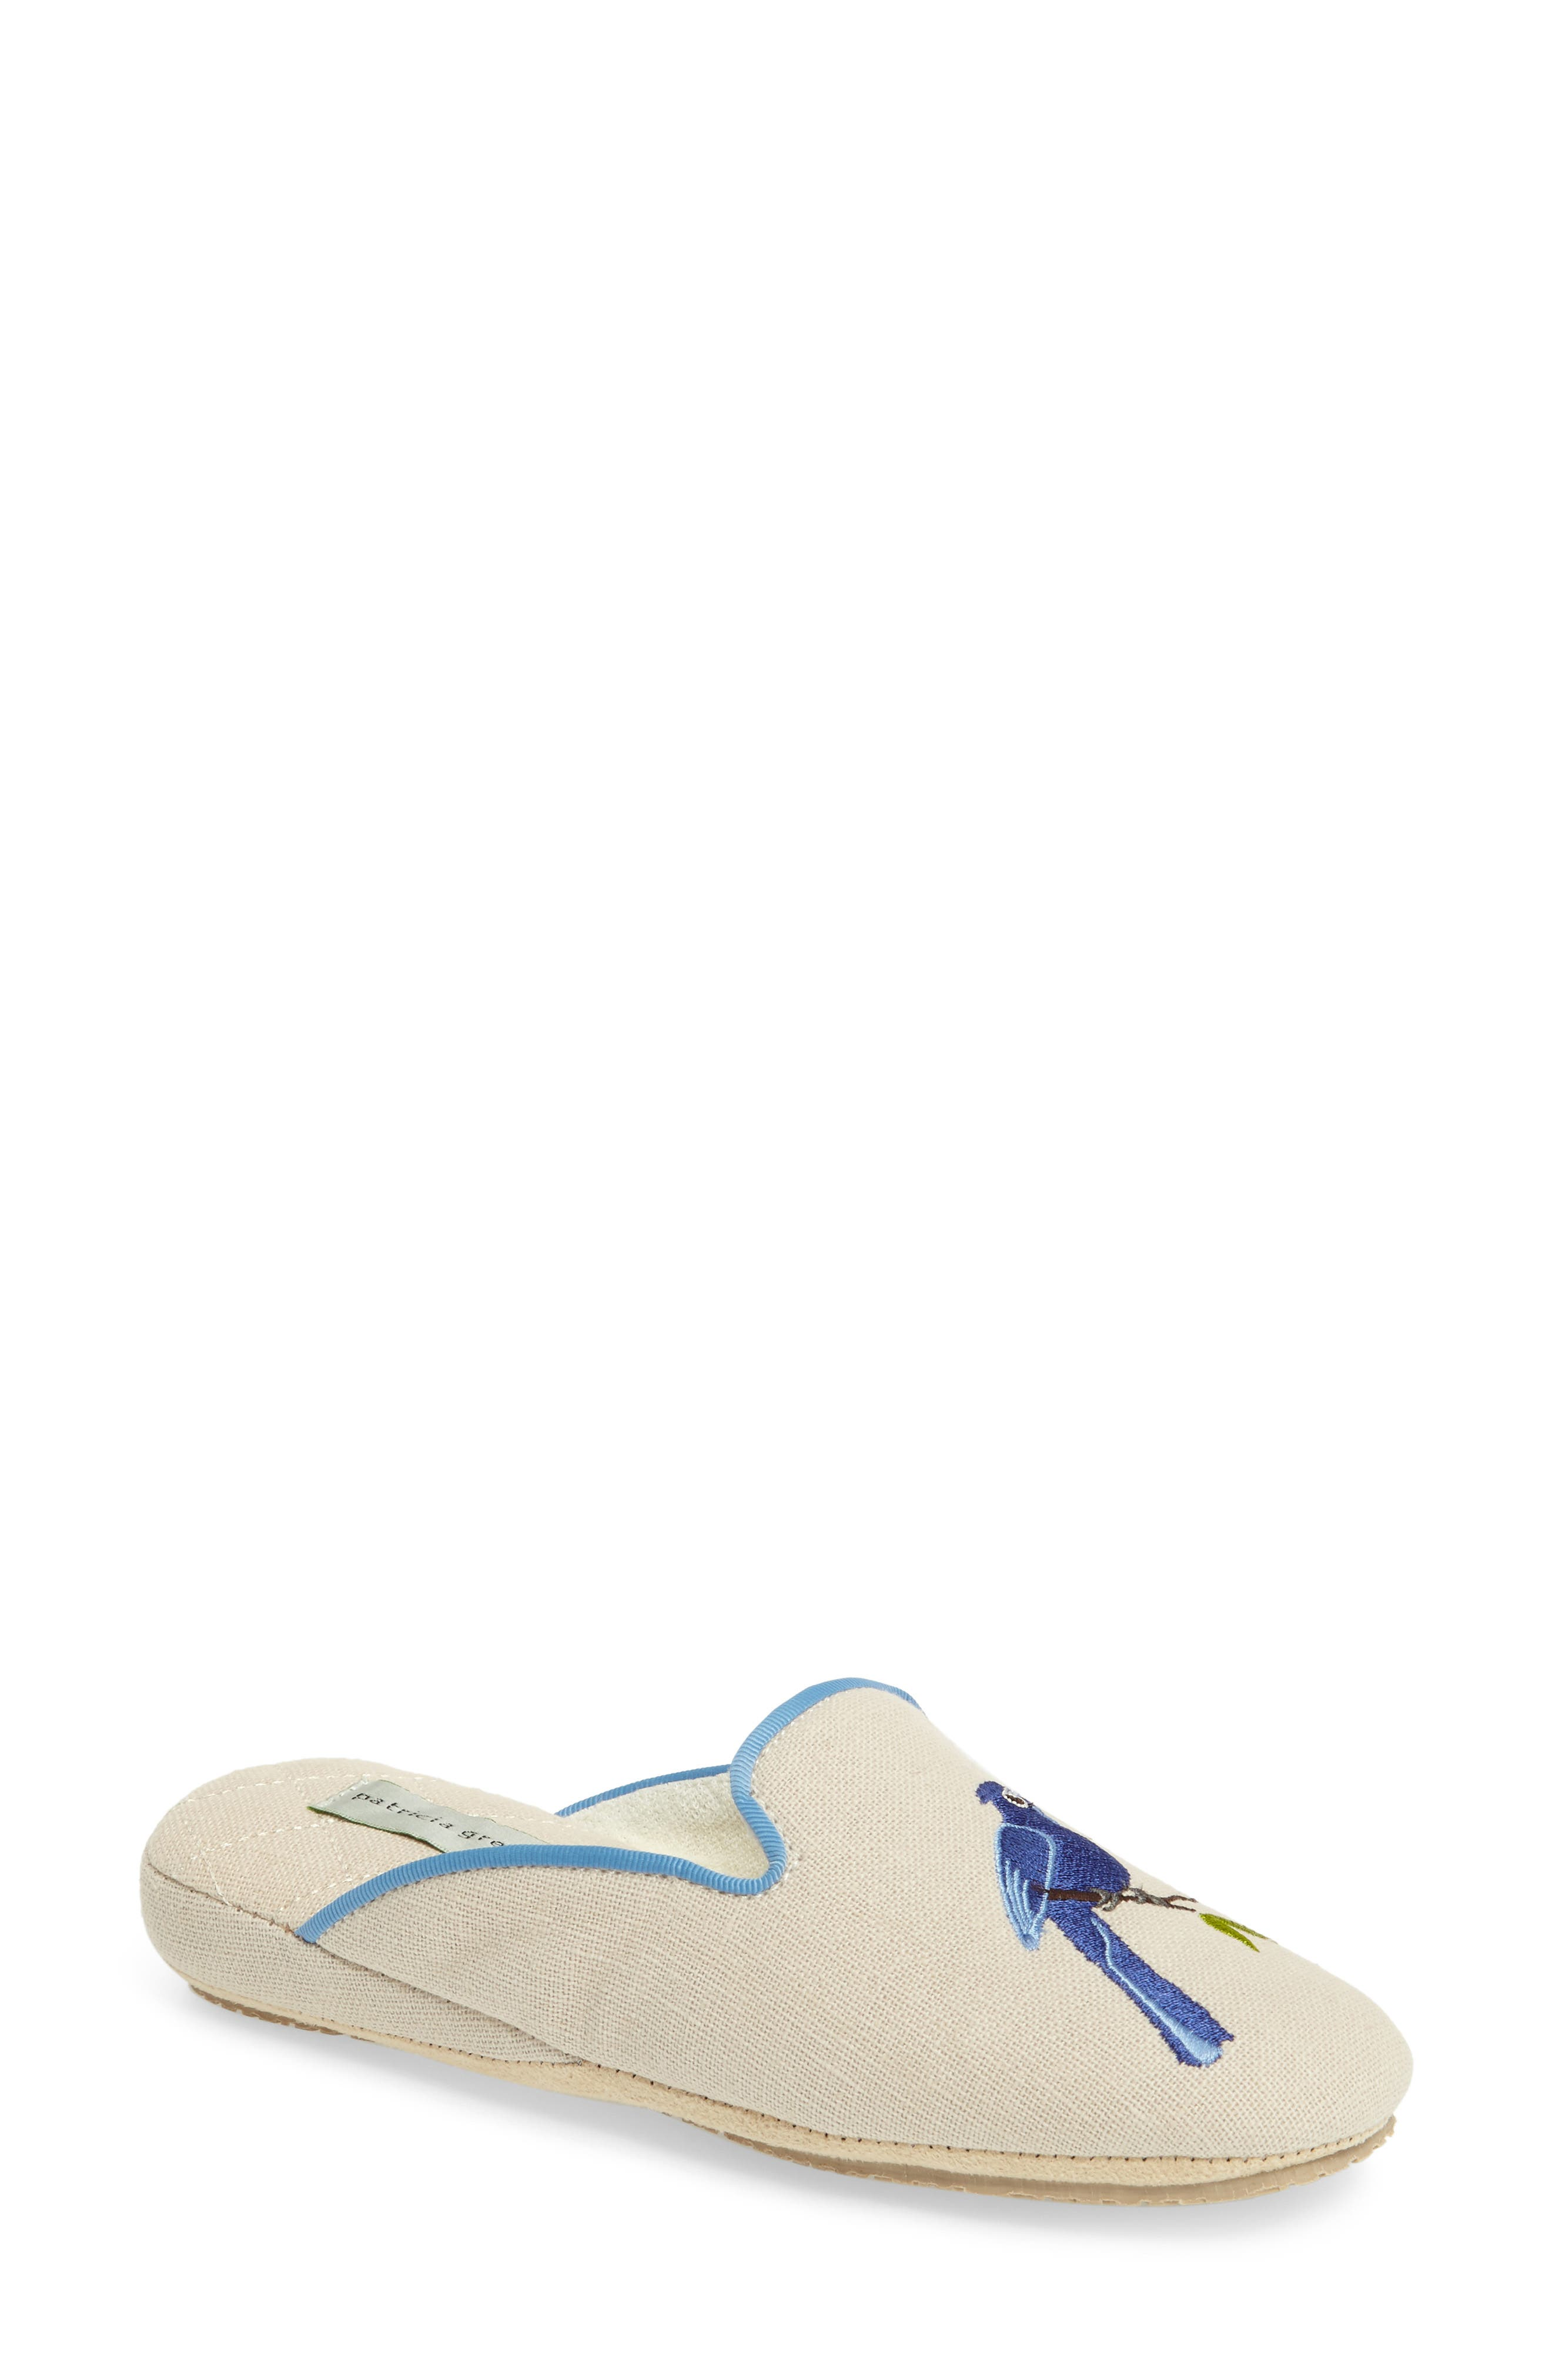 Bluebird Embroidered Slipper,                             Main thumbnail 1, color,                             255